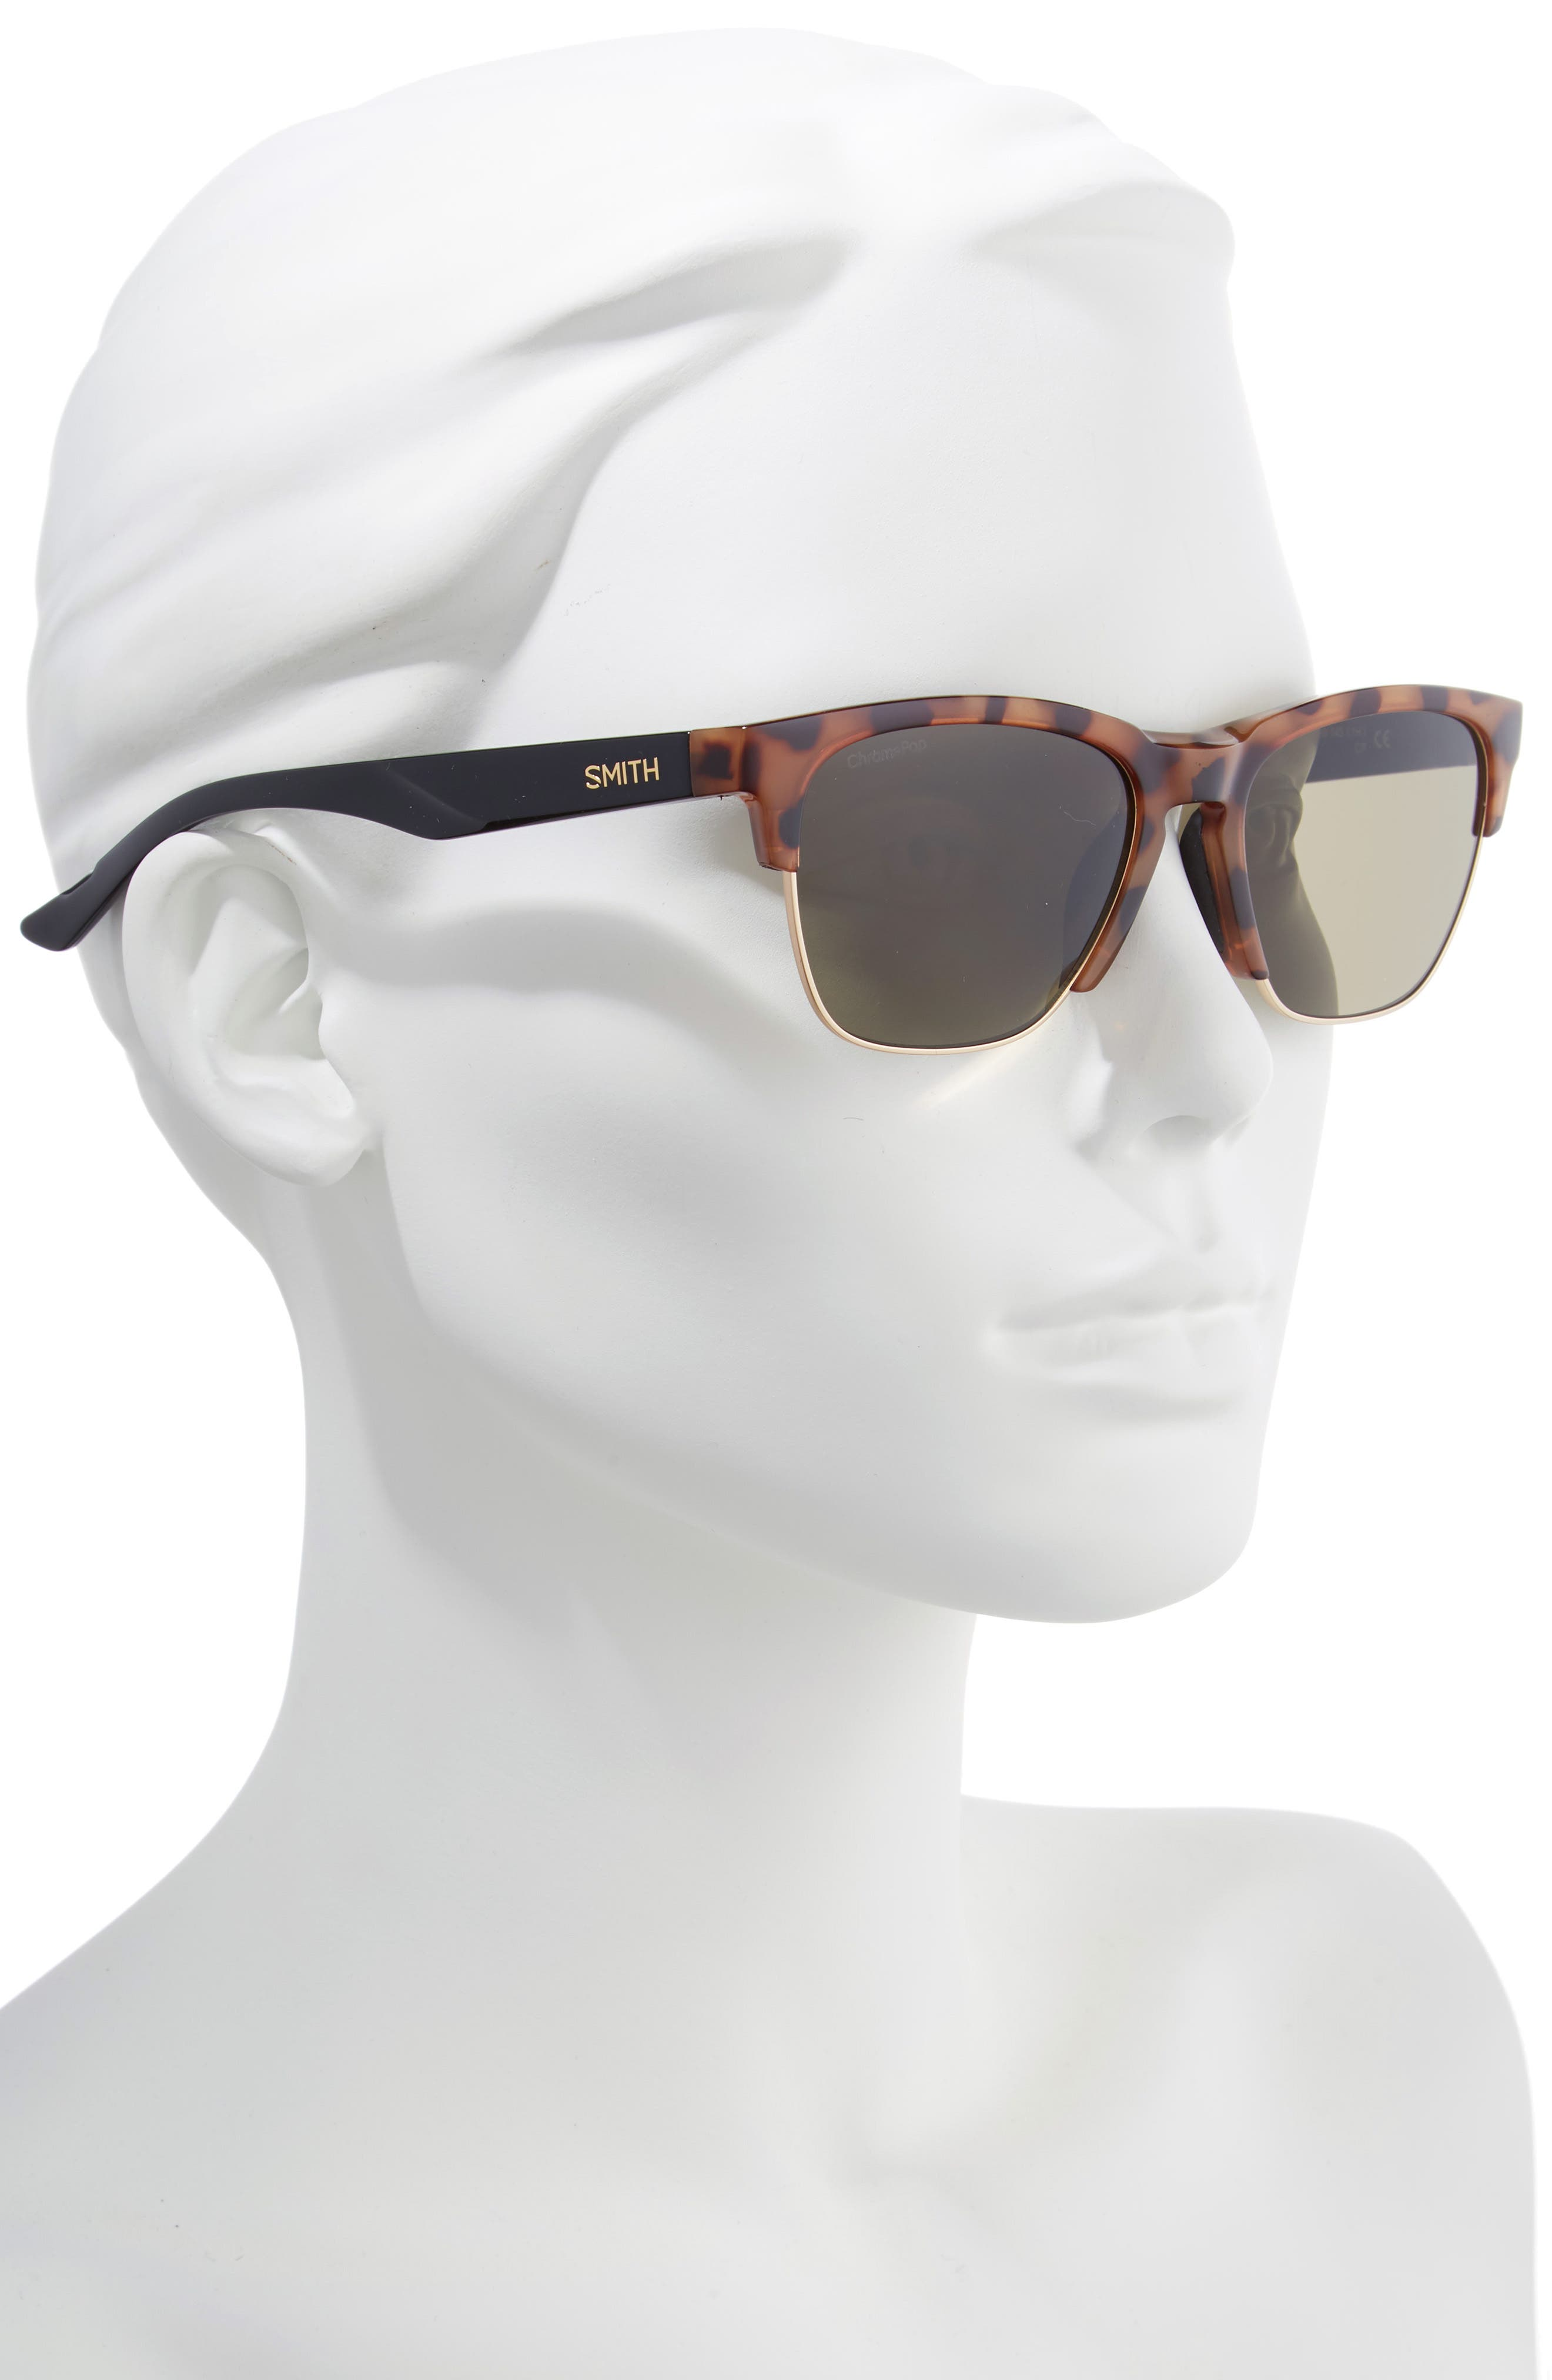 SMITH, Haywire 55mm ChromaPop<sup>™</sup> Polarized Sunglasses, Alternate thumbnail 2, color, HONEY TORTOISE/ GREEN